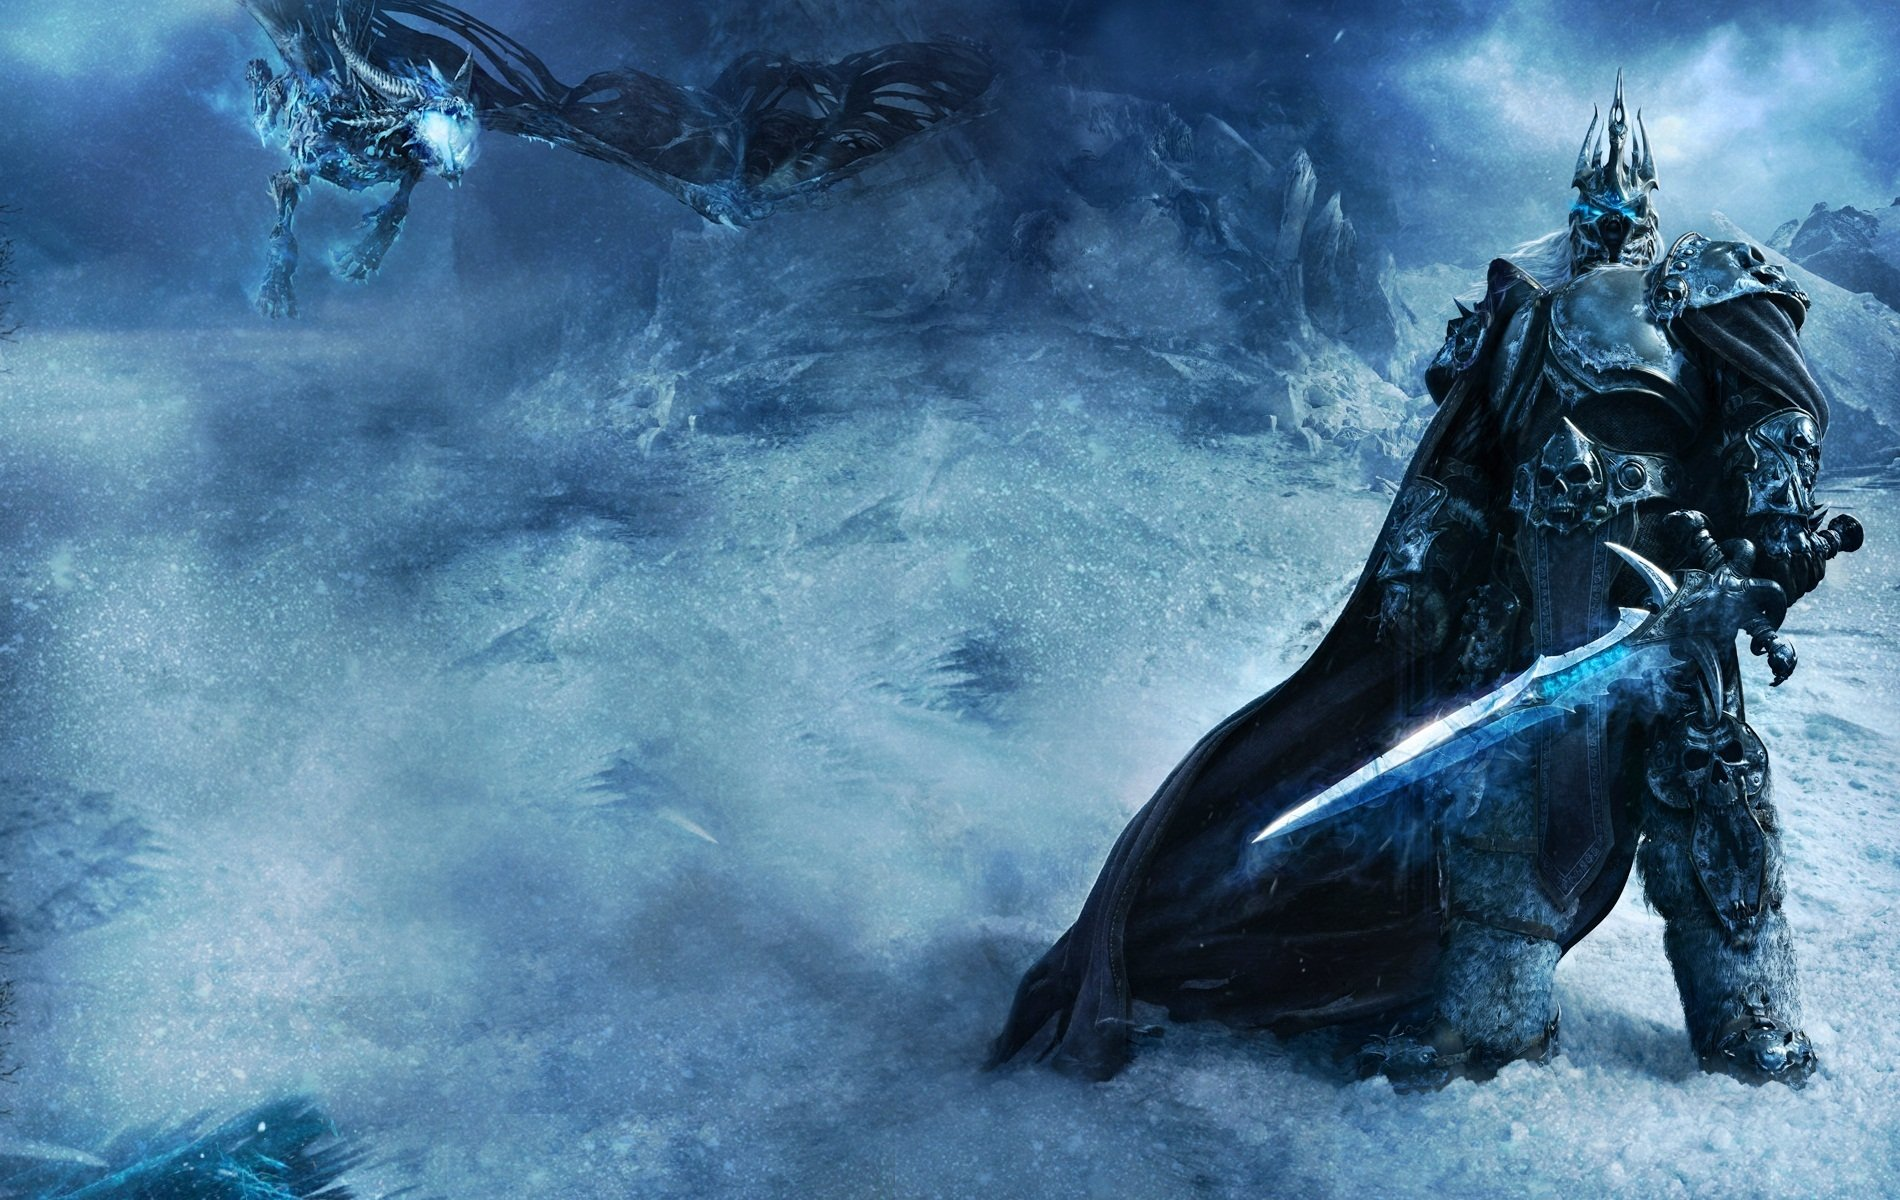 896 World Of Warcraft HD Wallpapers | Backgrounds - Wallpaper Abyss